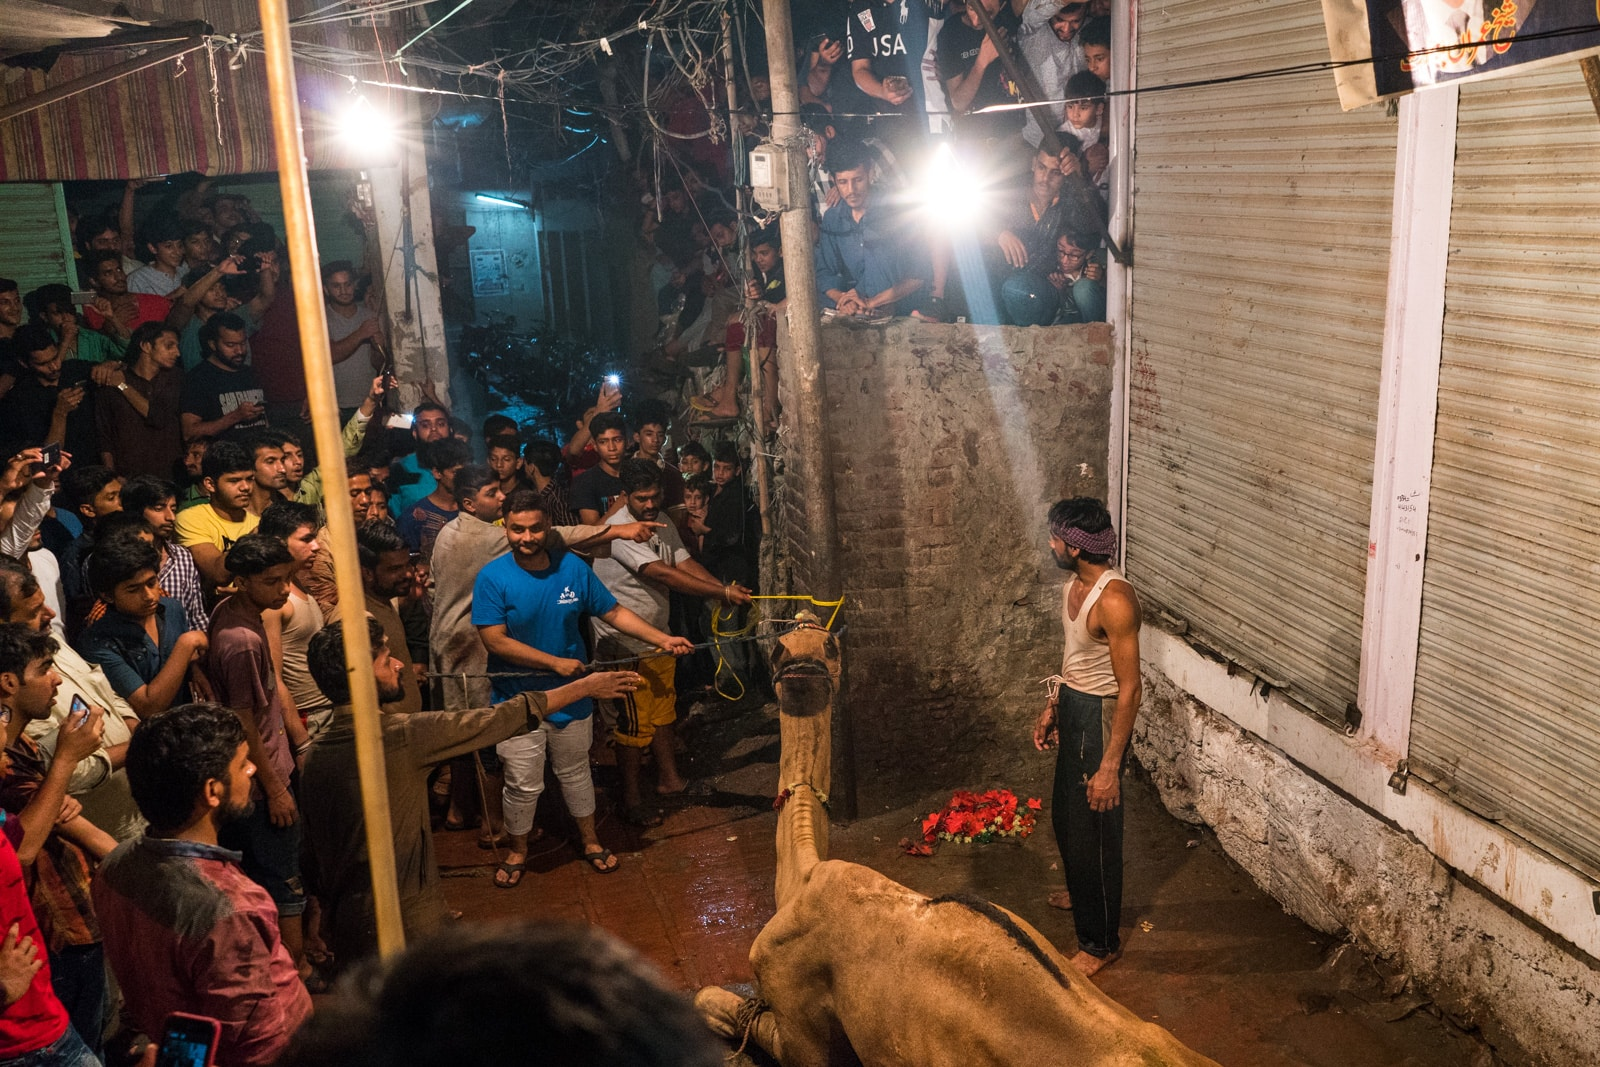 Celebrating Eid al-Adha in Lahore, Pakistan - Camel about to be slaughtered - Lost With Purpose travel blog